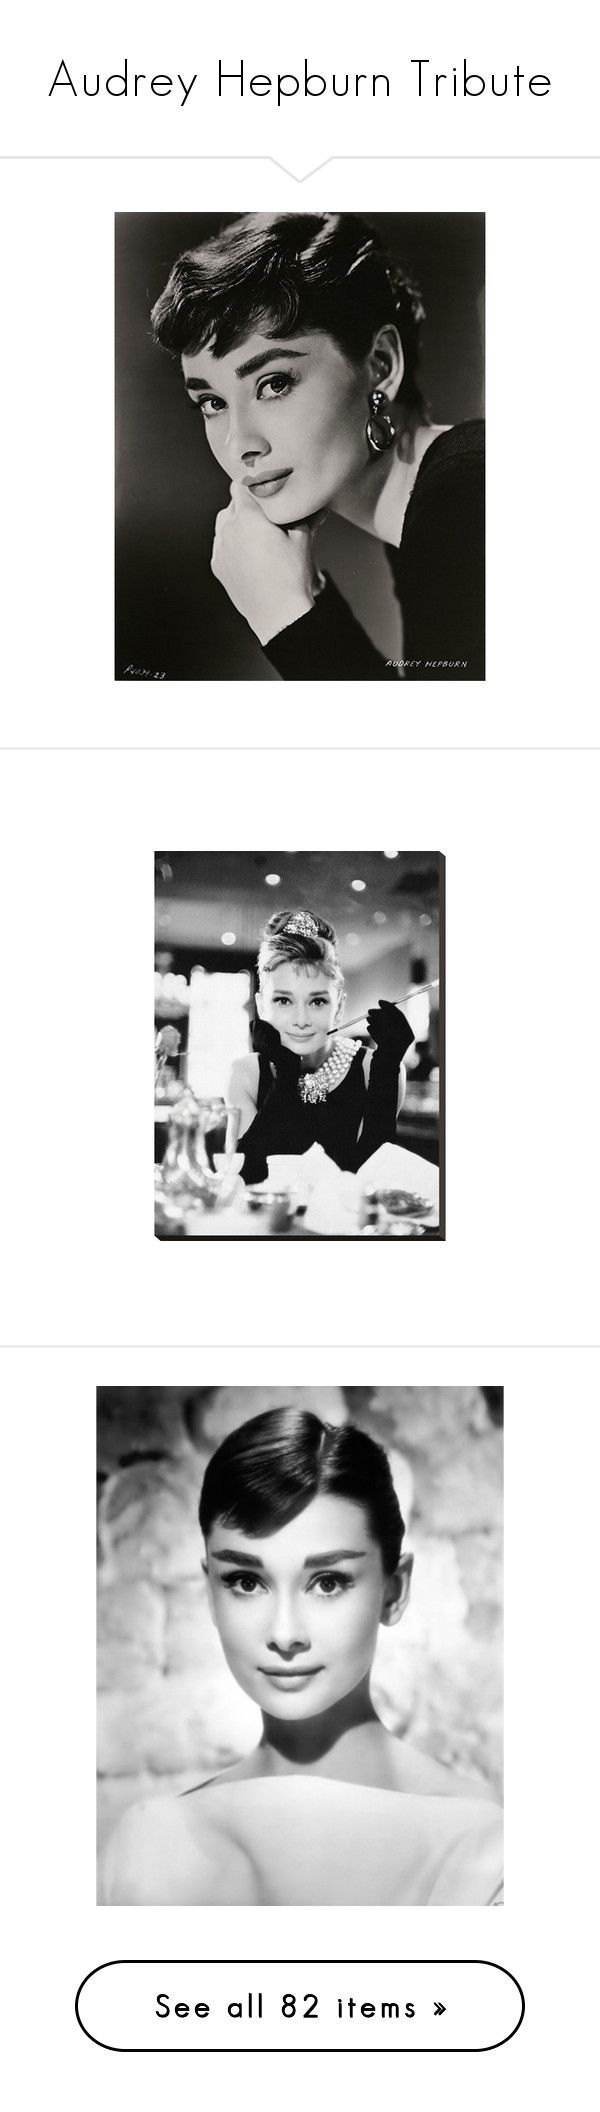 """""""Audrey Hepburn Tribute"""" by fashionista-jaygee ❤ liked on Polyvore featuring audrey hepburn, home, home decor, wall art, home wall decor, stretched canvas, canvas home decor, audrey hepburn wall art, audrey and models"""